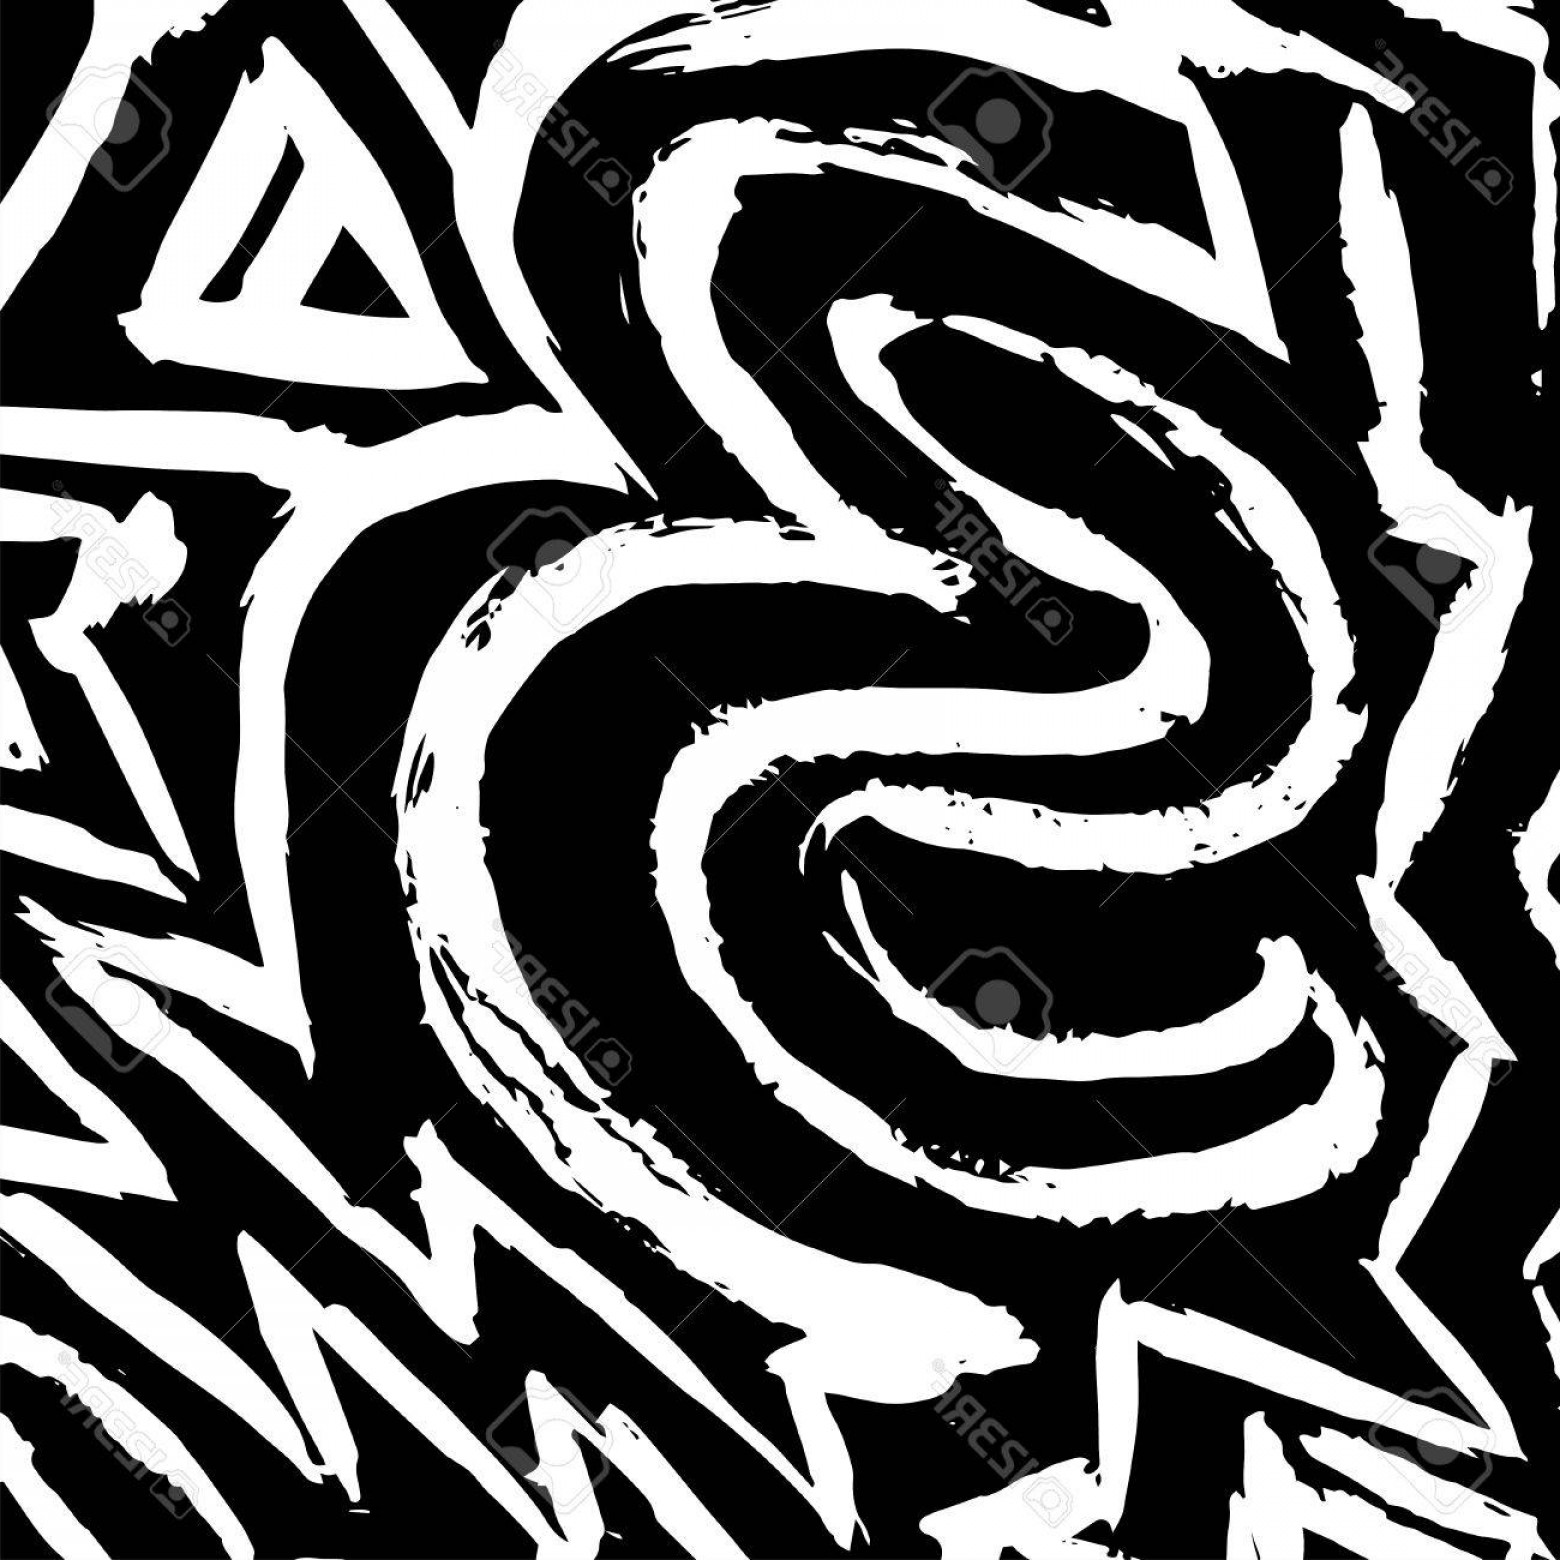 Graffiti Lines Vector: Photostock Vector Graffiti White Lines On A Black Background Vector Illustration